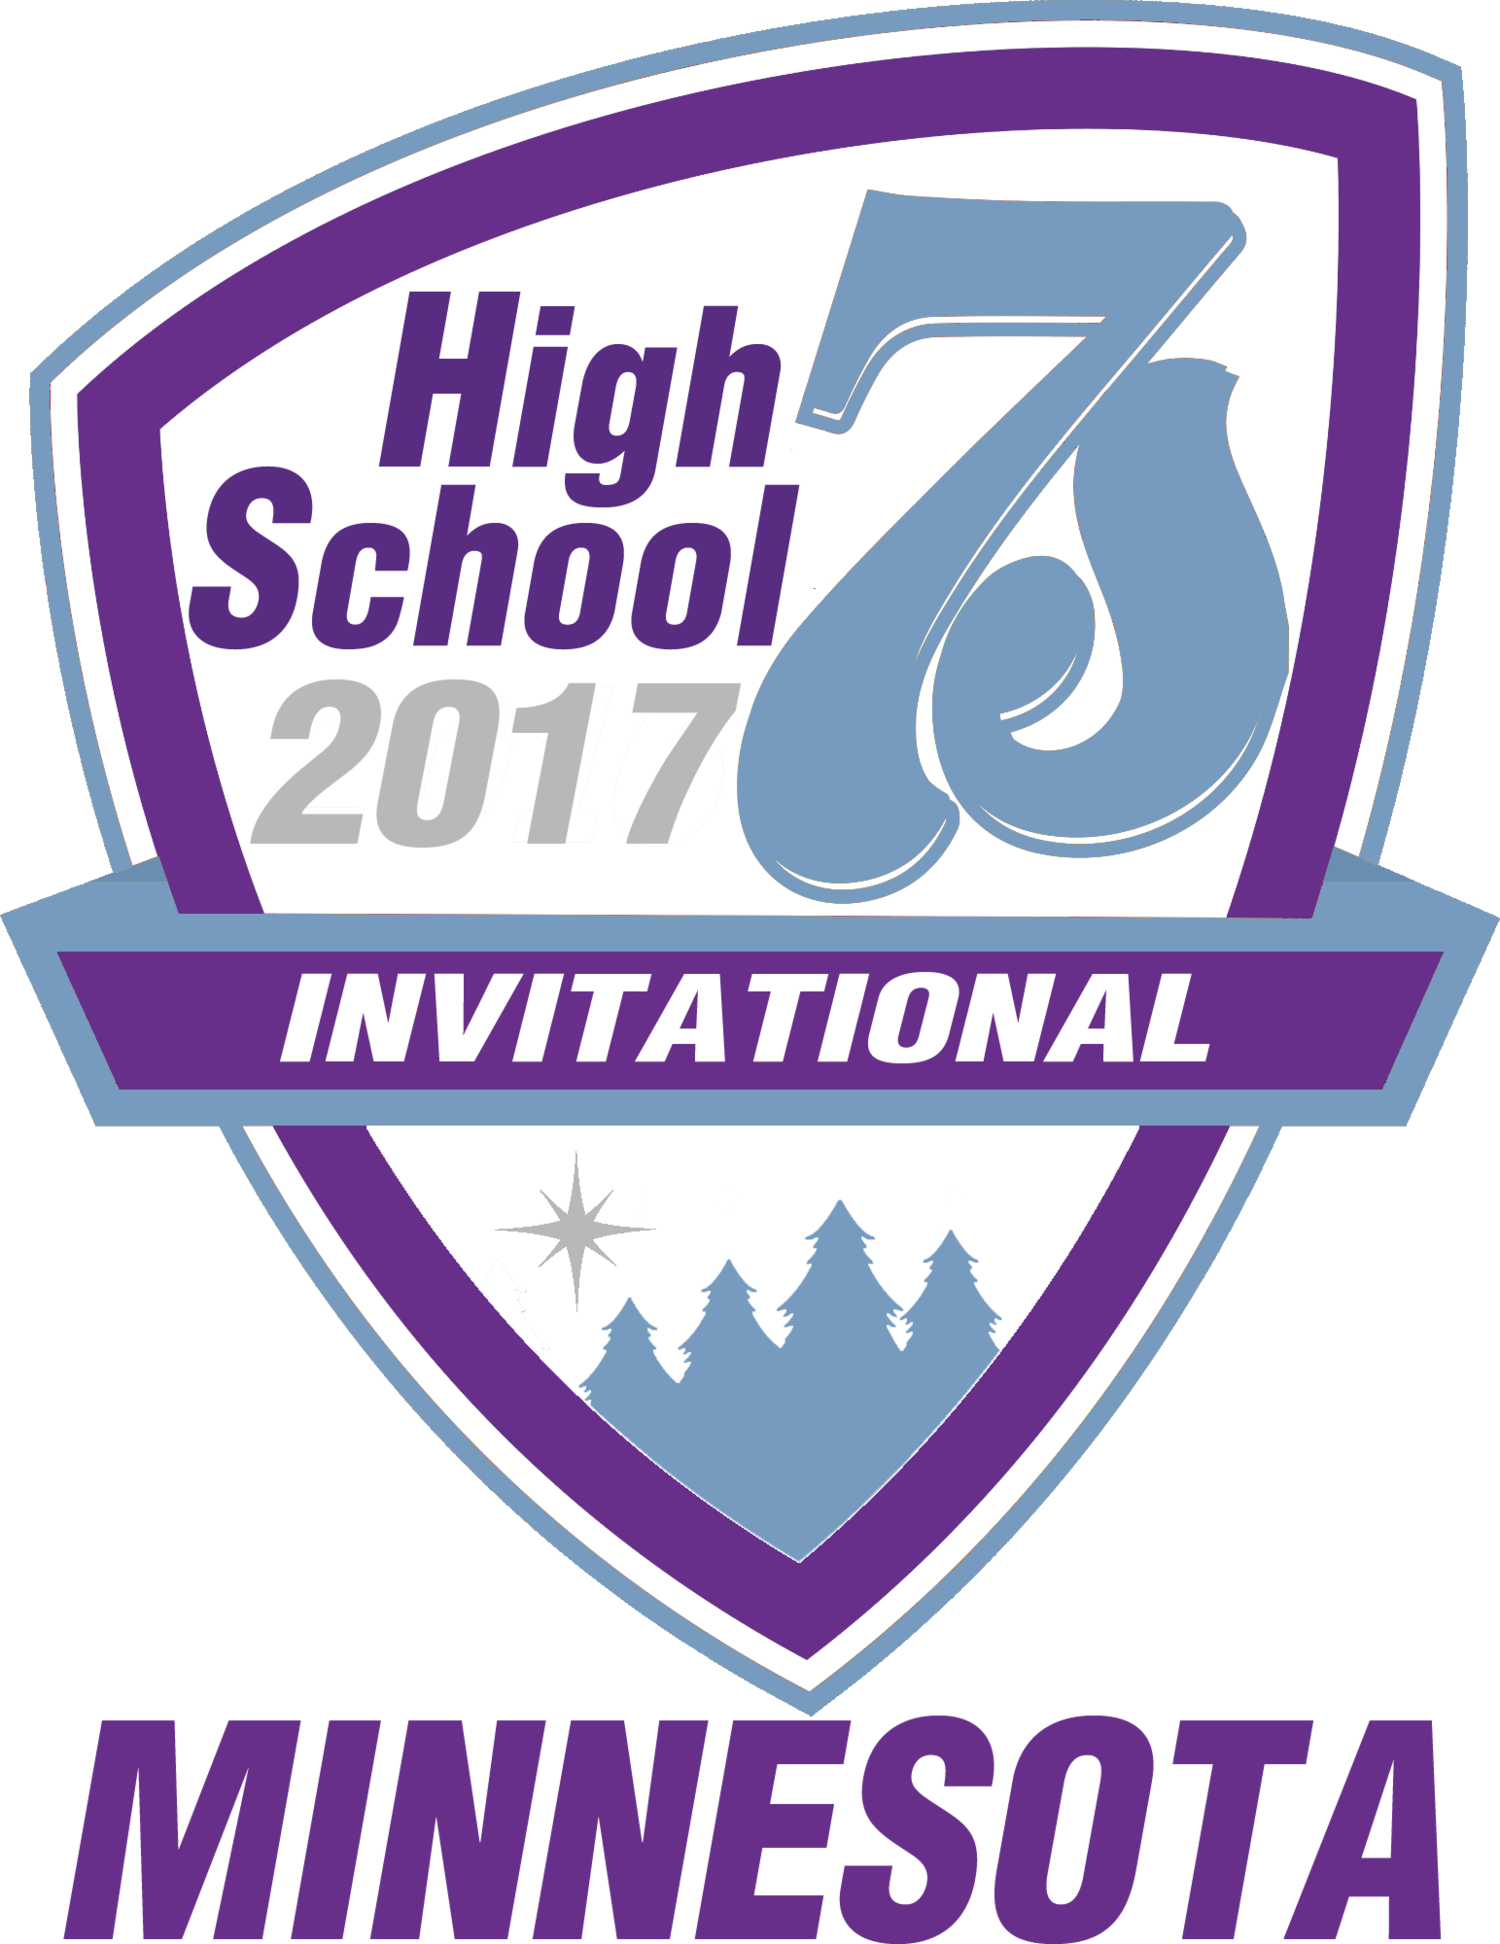 2017 National High School Rugby 7s Invitational